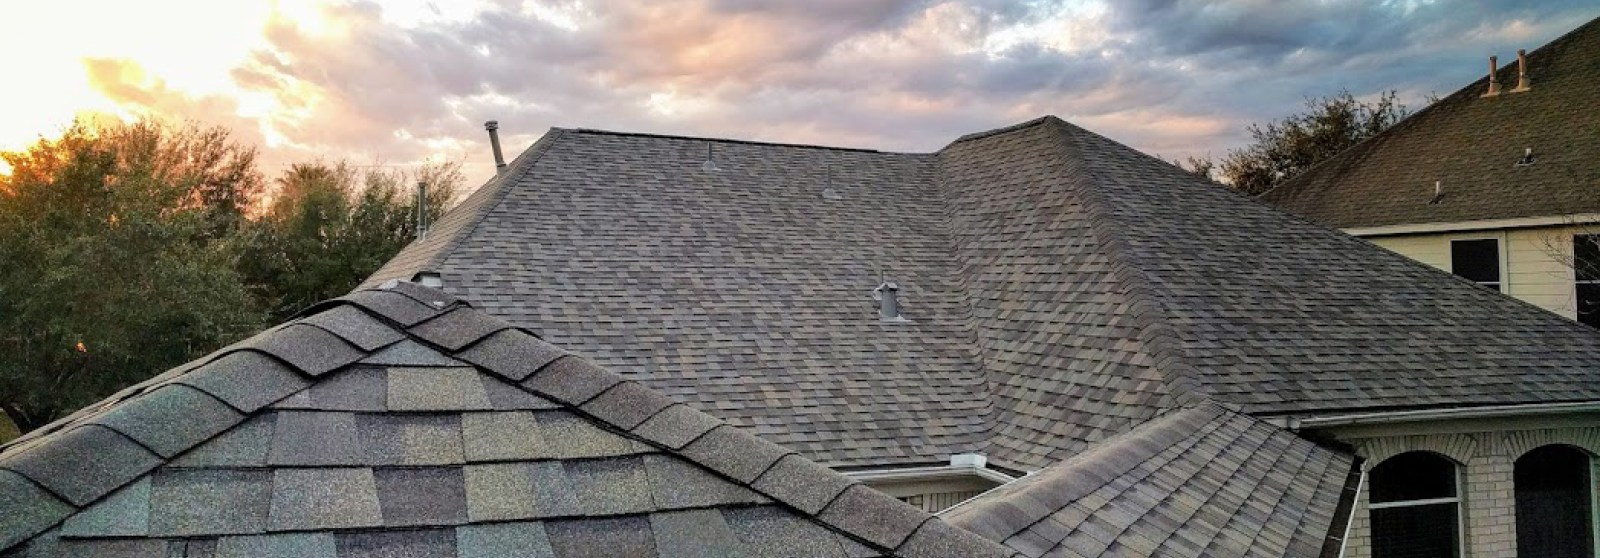 Roof For Troops Gaf Discount Houston Roof Repair